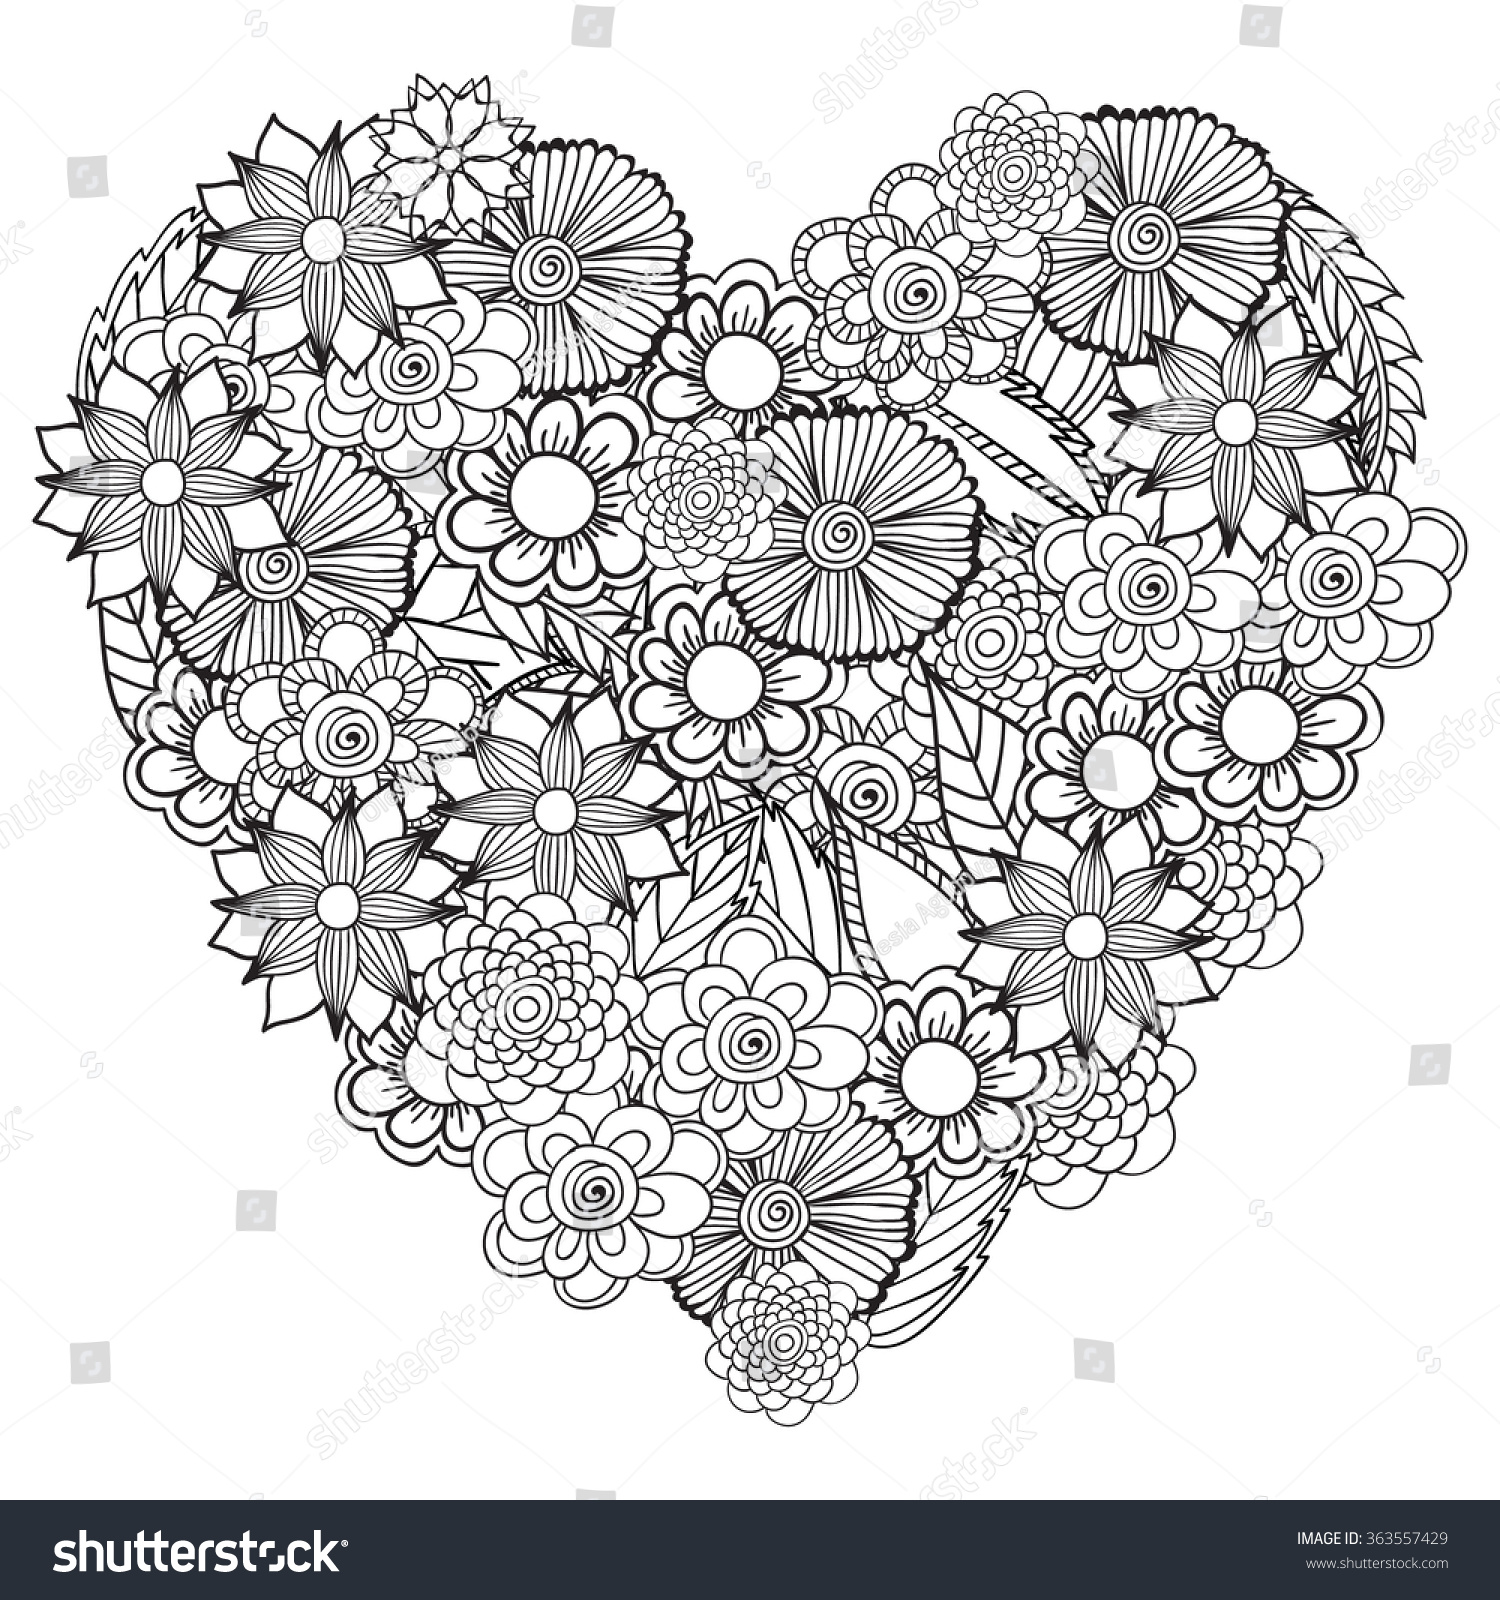 Heart flower coloring pages - Hand Drawn Artistic Ethnic Ornamental Patterned Floral Frame In Doodle Zentangle Style For Adult Coloring